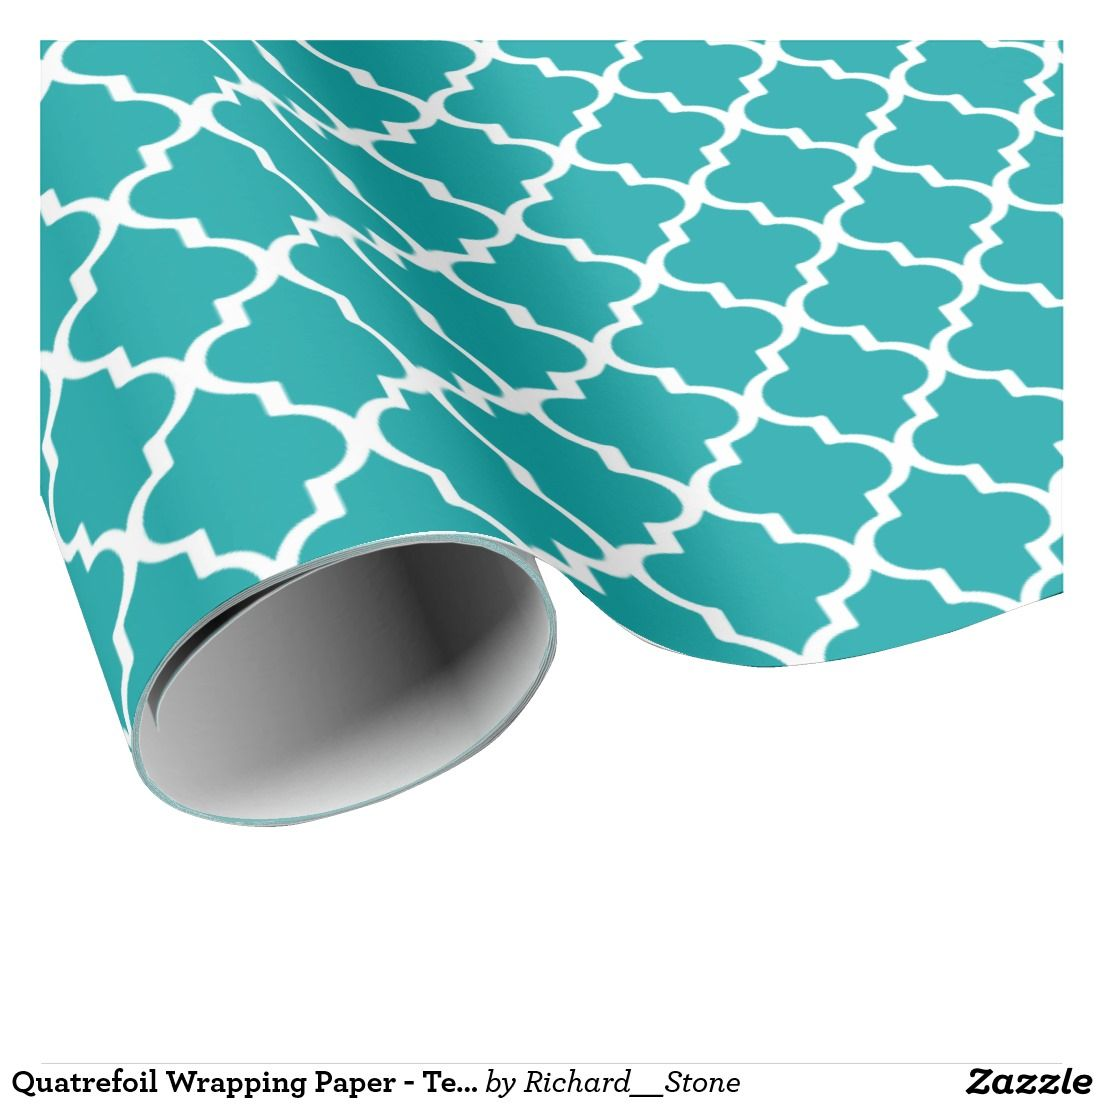 Quatrefoil Wrapping Paper - Teal